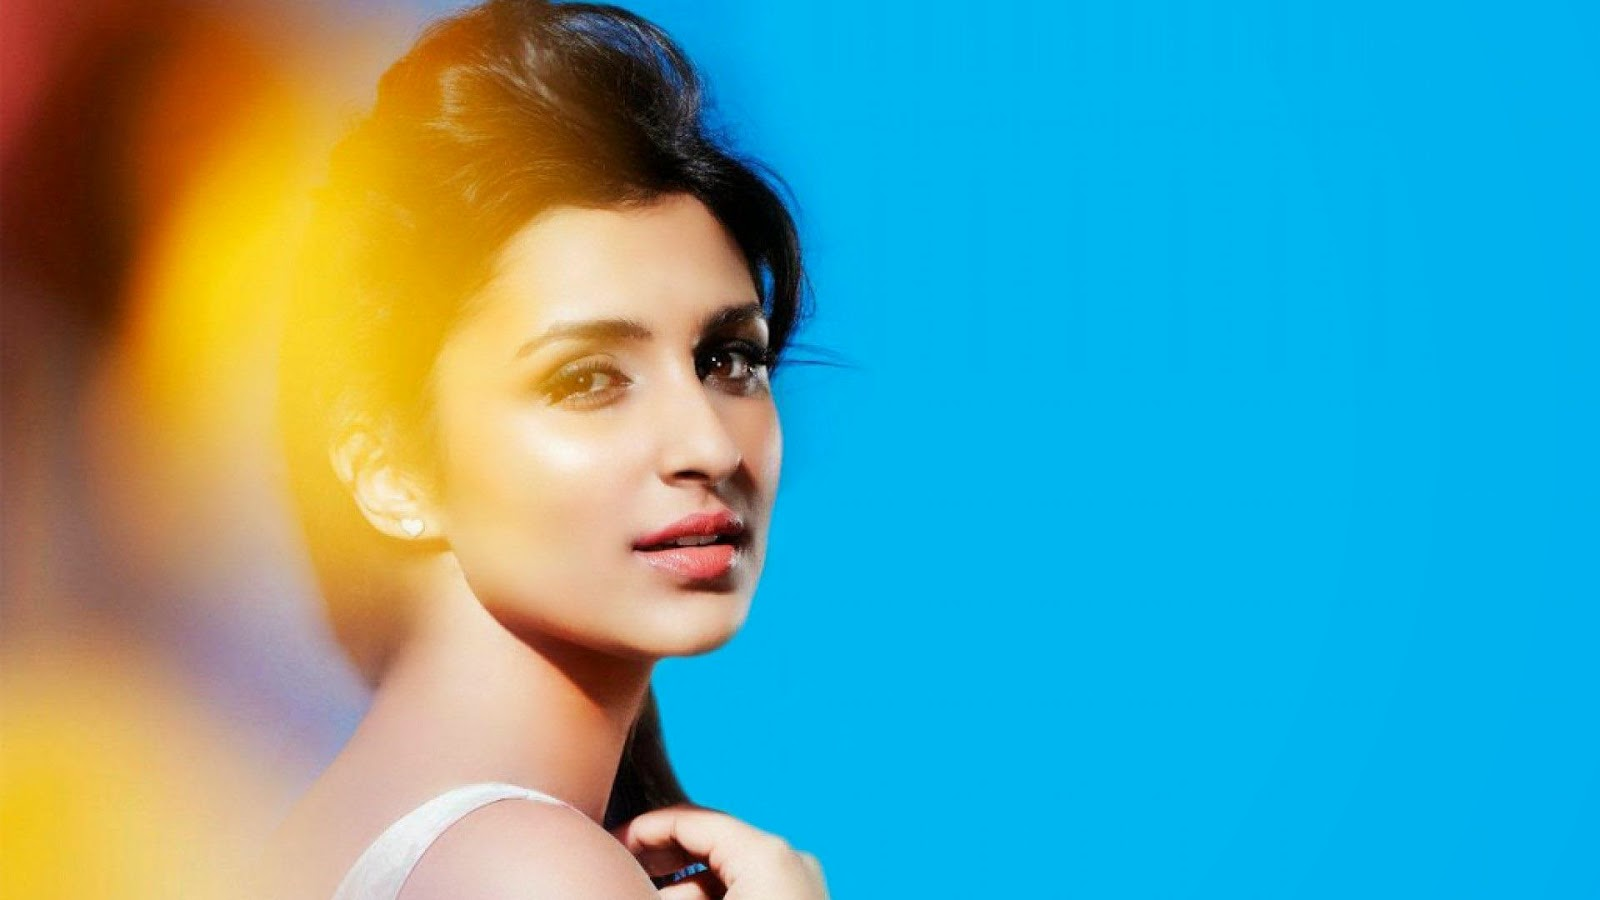 Bollywood actress wallpaper download best hd wallpaper - Indian actress wallpaper download ...